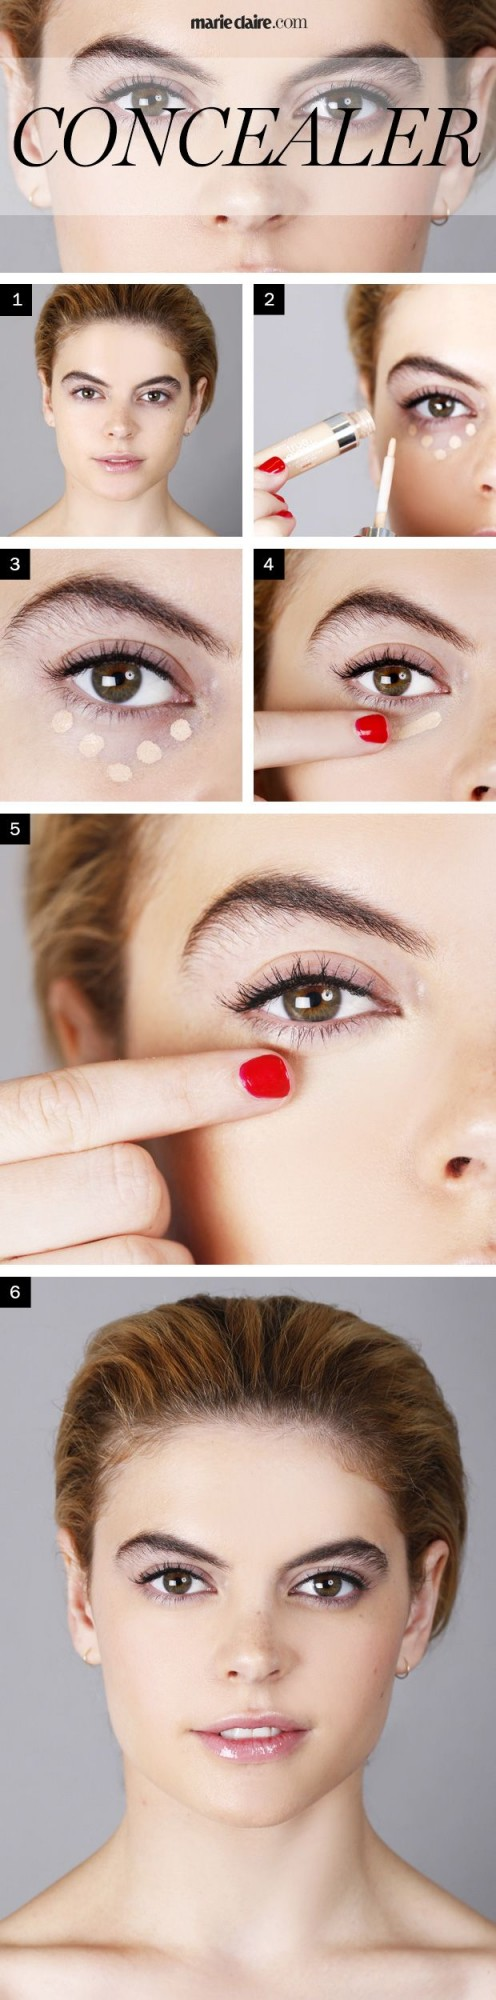 16 Makeup Tricks For Flawless Look Every Woman Should Know (13)